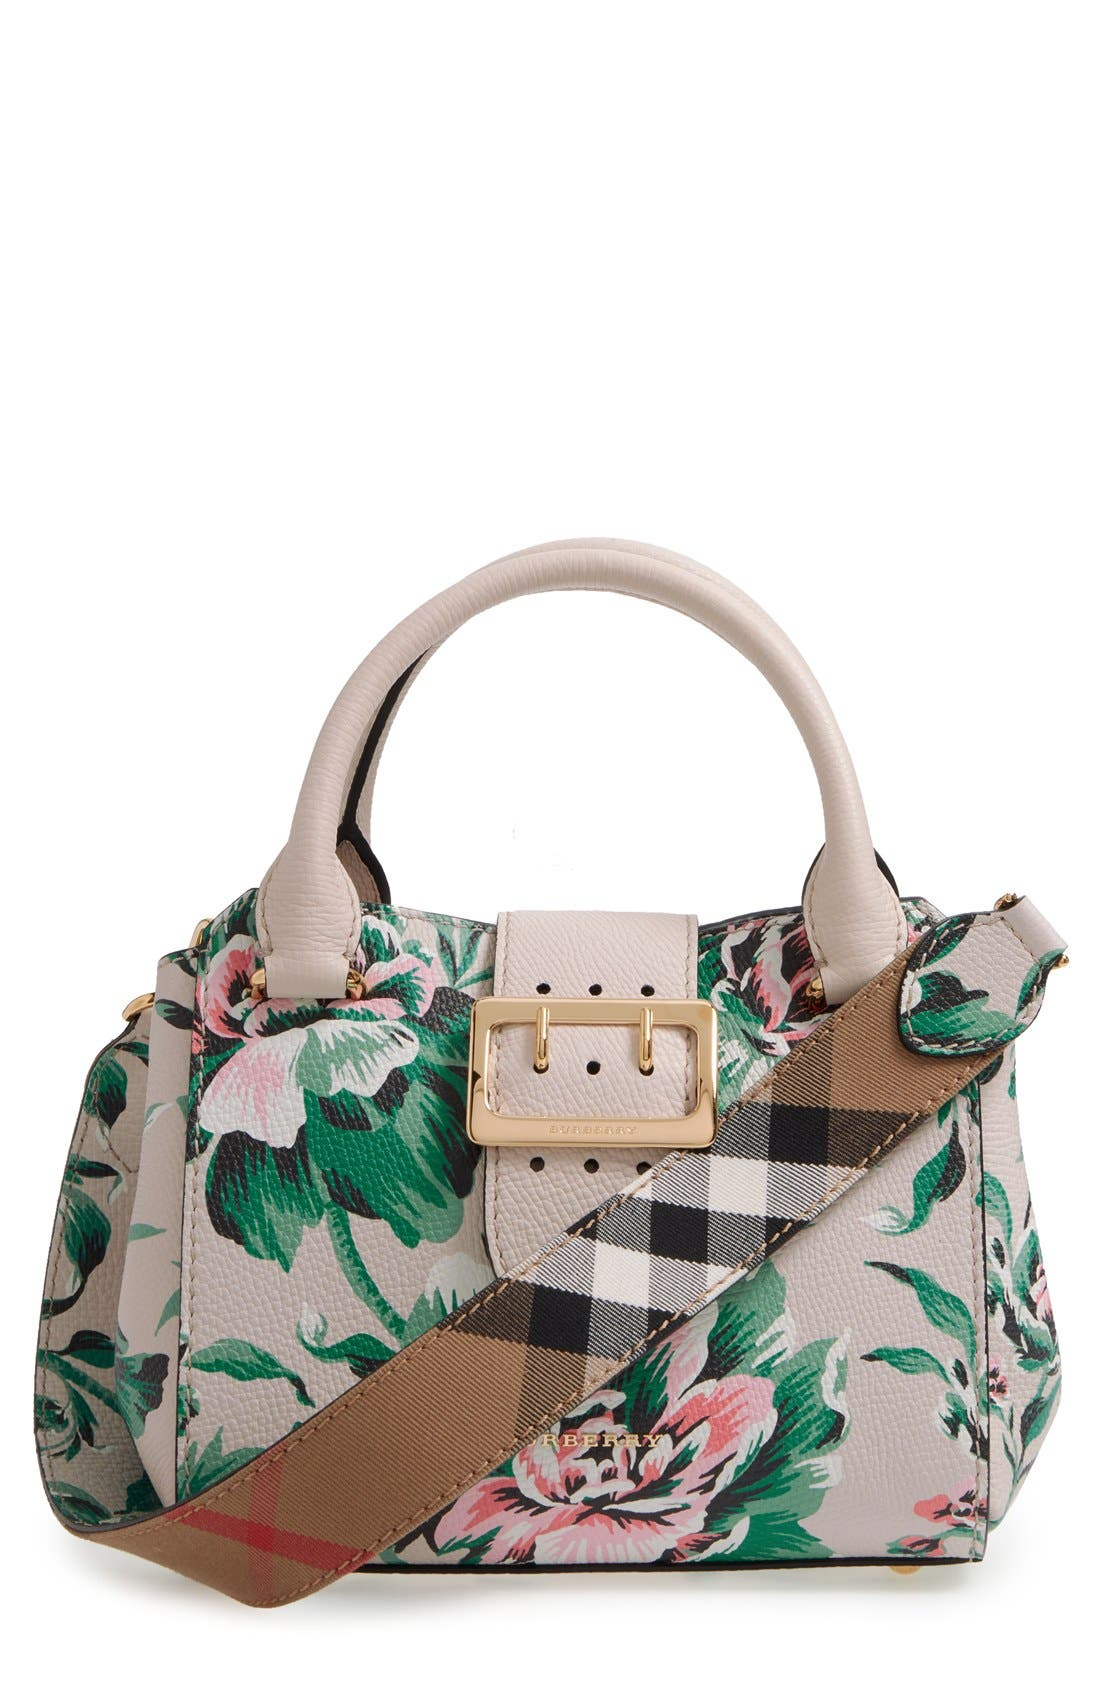 Small Buckle Floral Calfskin Leather Satchel,                         Main,                         color, Emerald Green